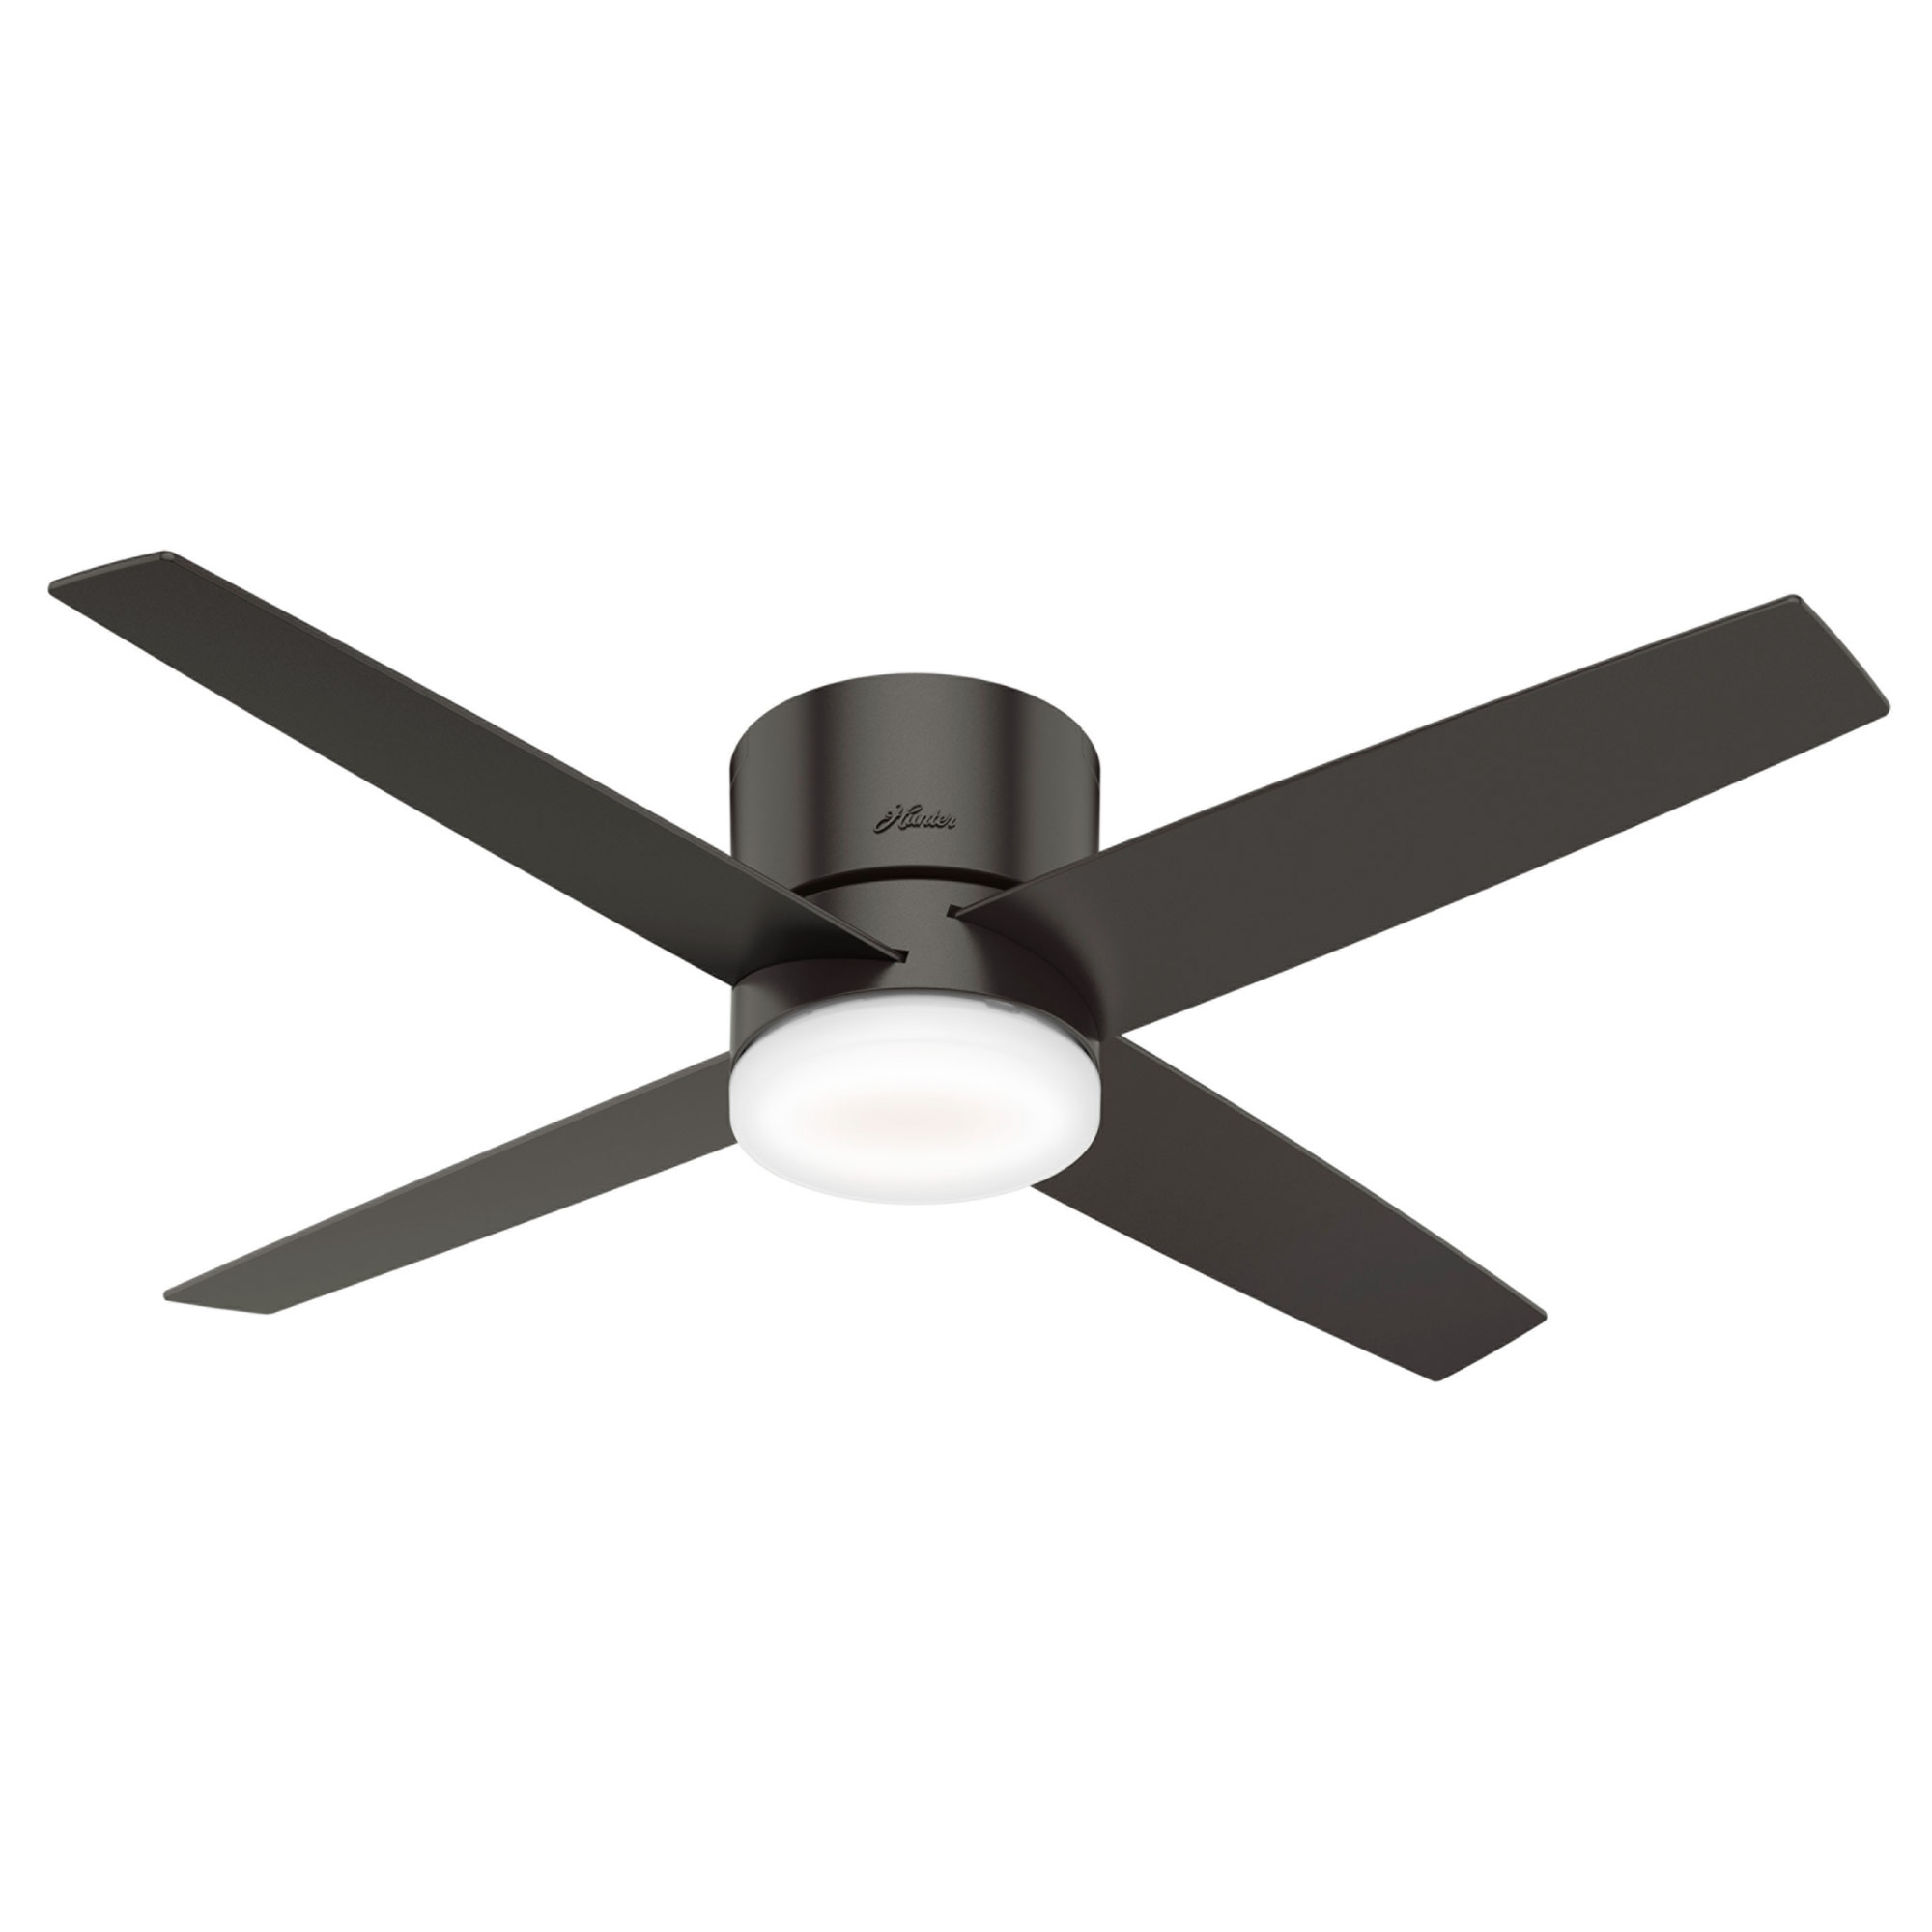 casablanca ceilingfan aya white click ceiling alternative fan ceilings views wifi p com htm